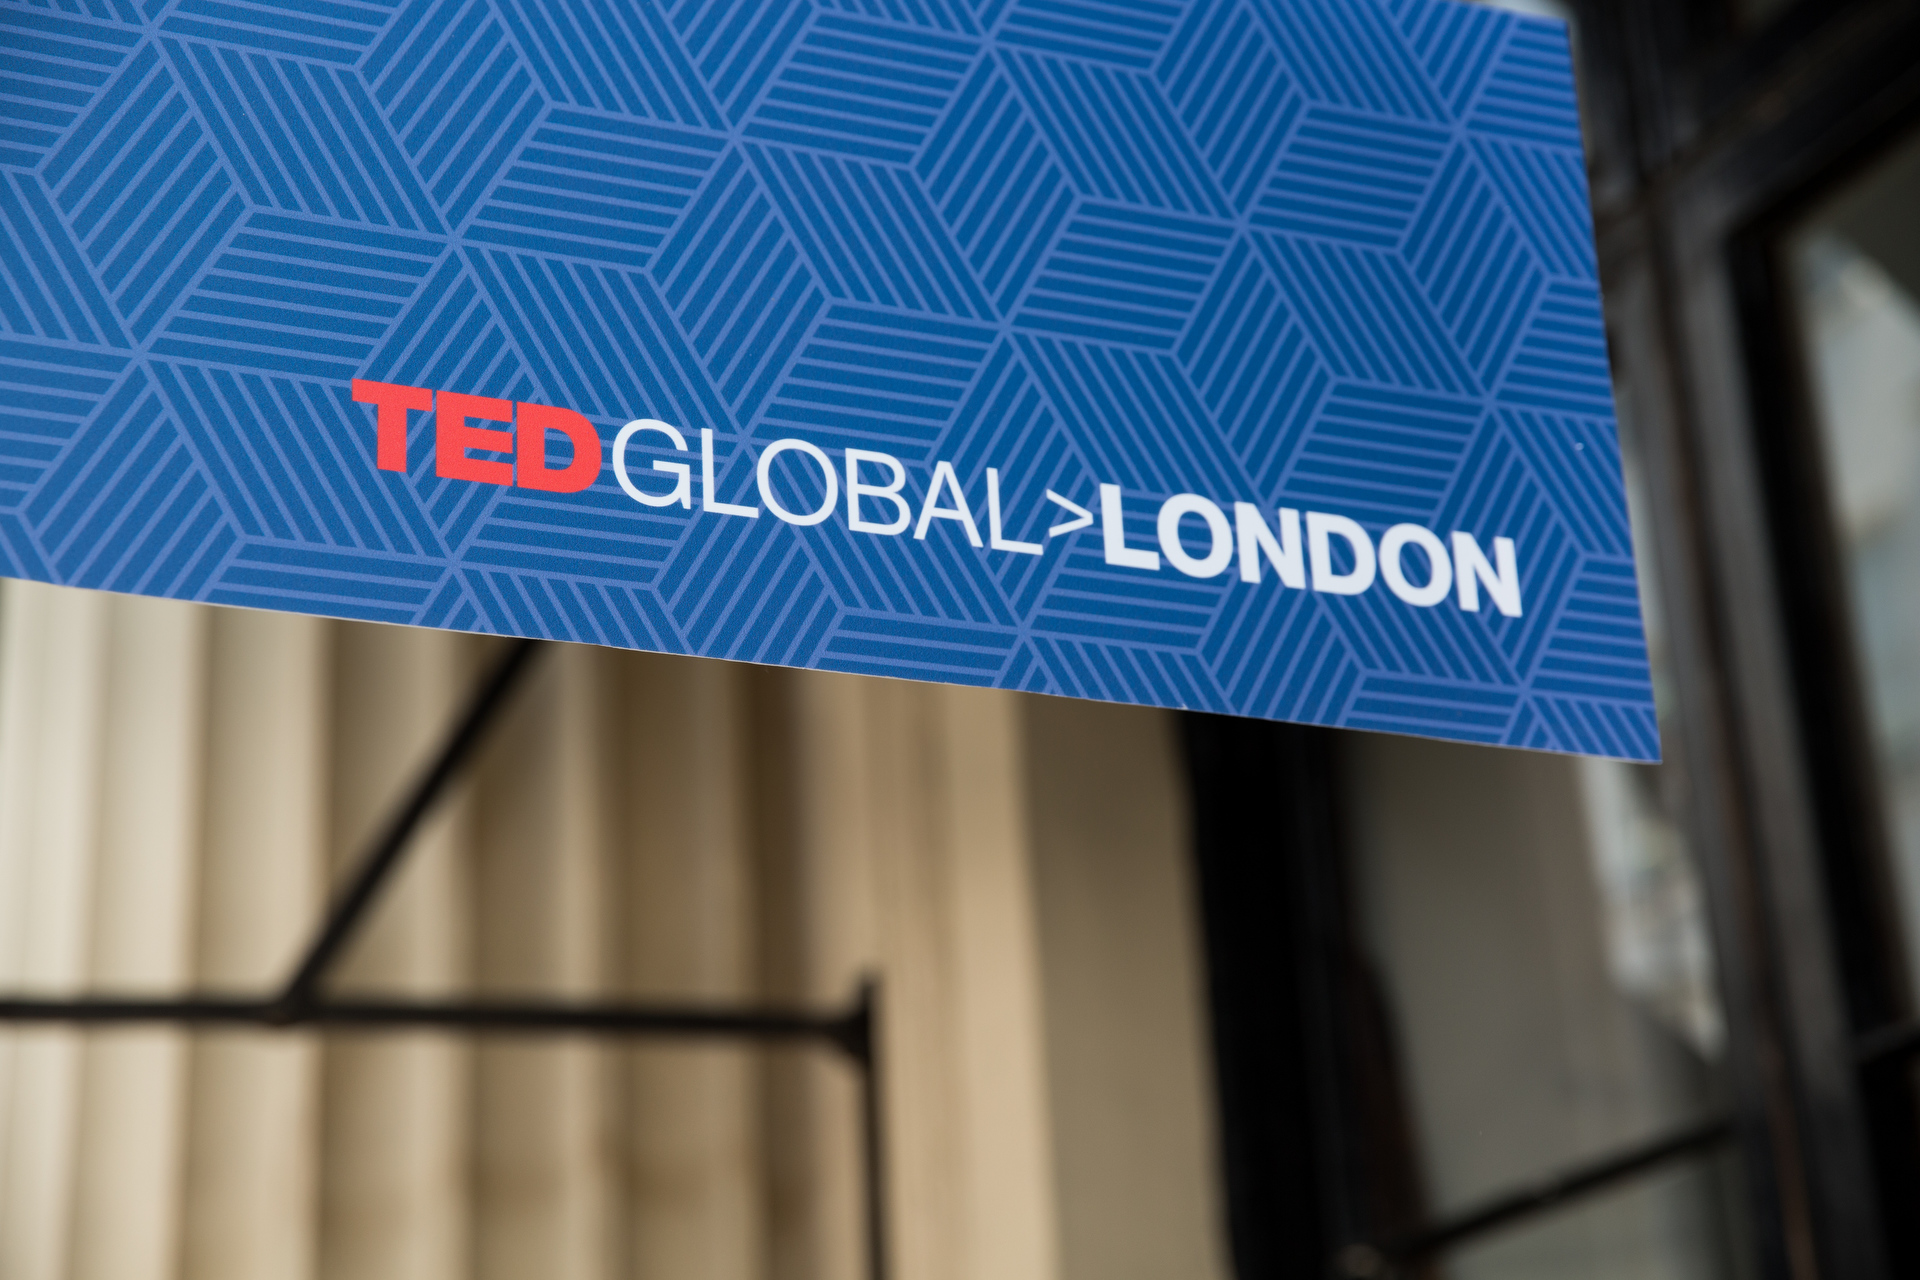 TEDGlobal London was a one-day event at the Faraday Lecture Hall at the Royal Institution of Great Britain. Photo: James Duncan Davidson/TED